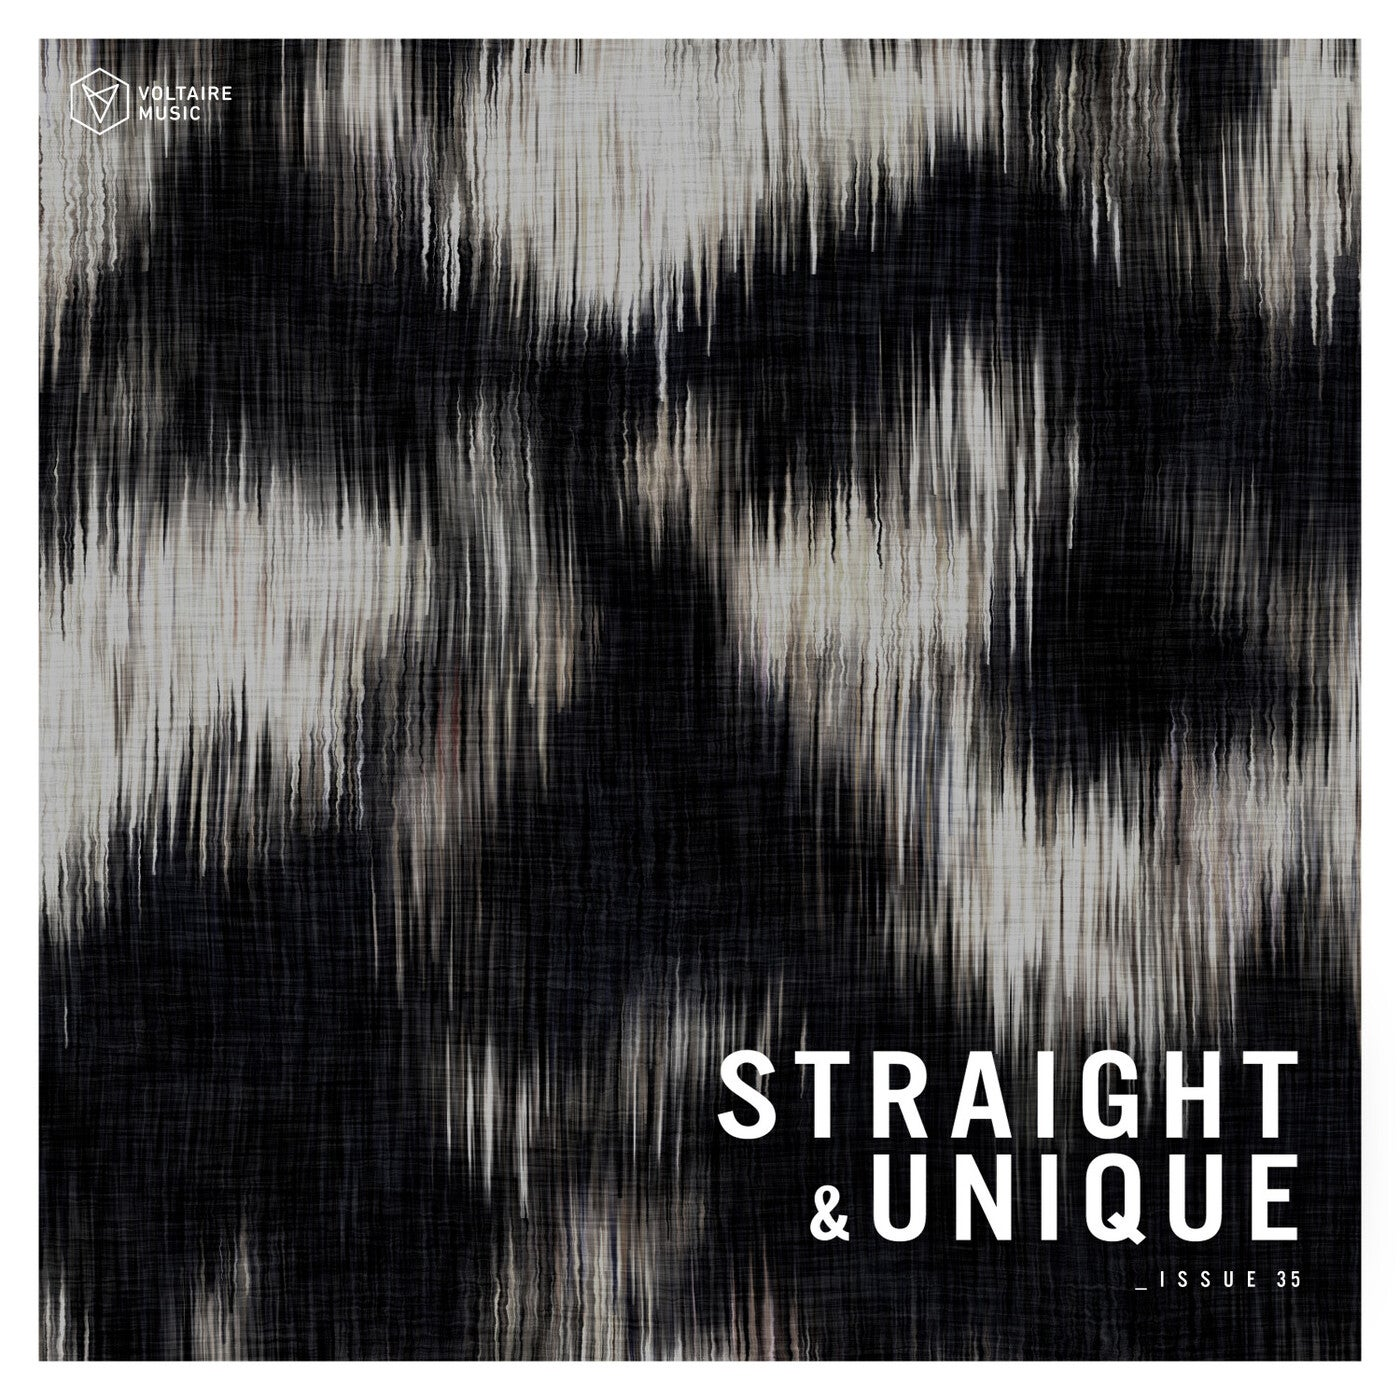 Various Performers - Straight & Unique Issue 35 (2021)